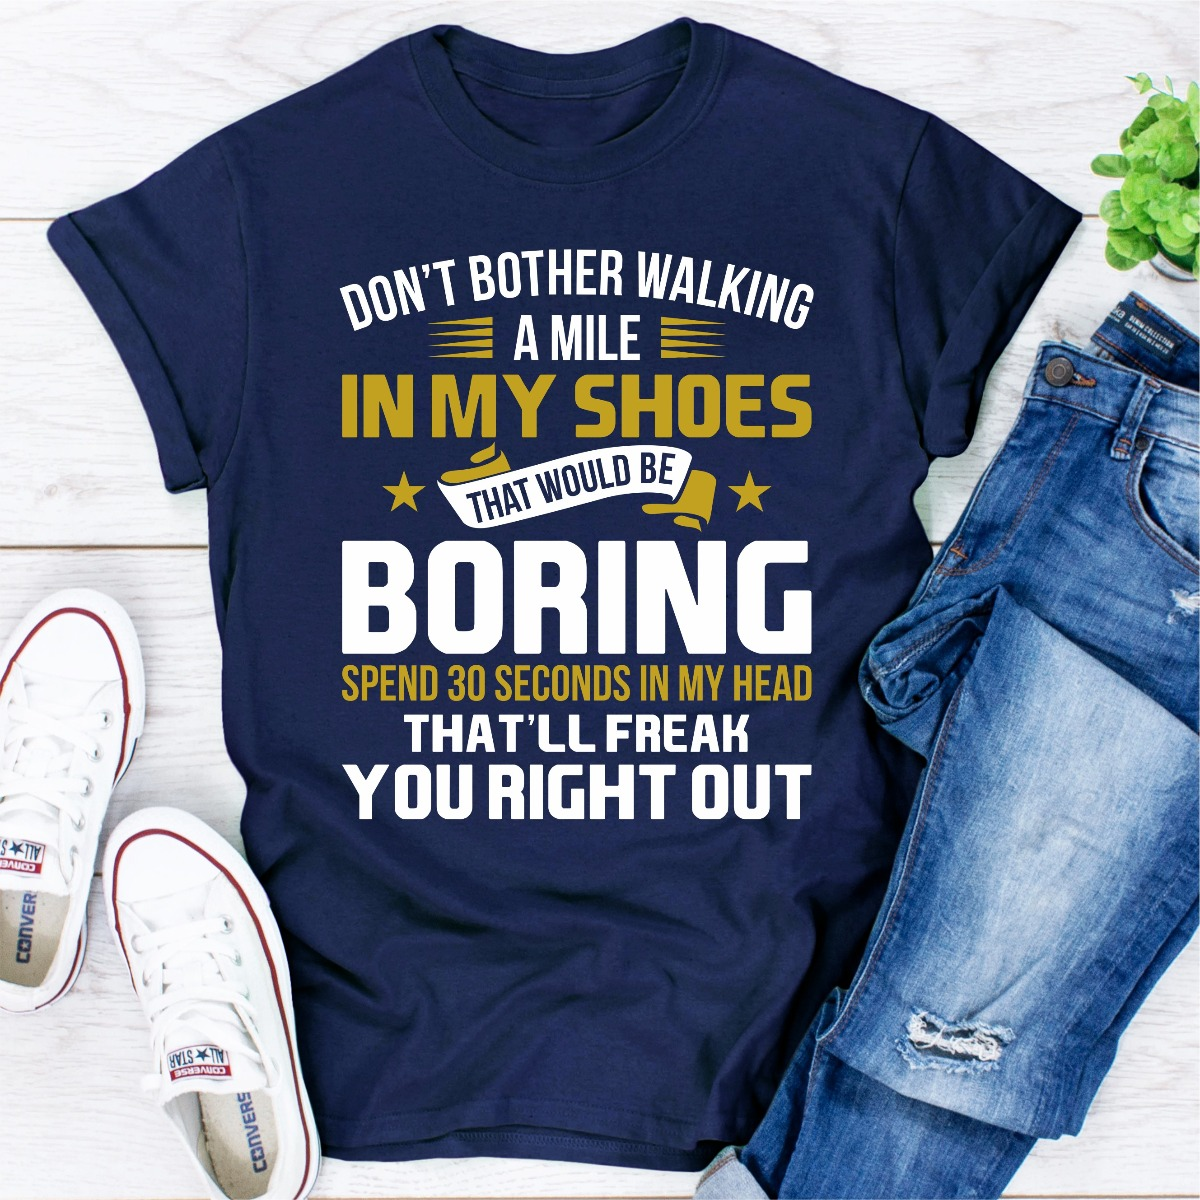 Don't Bother Walking A Mile In My Shoes (Navy / S)